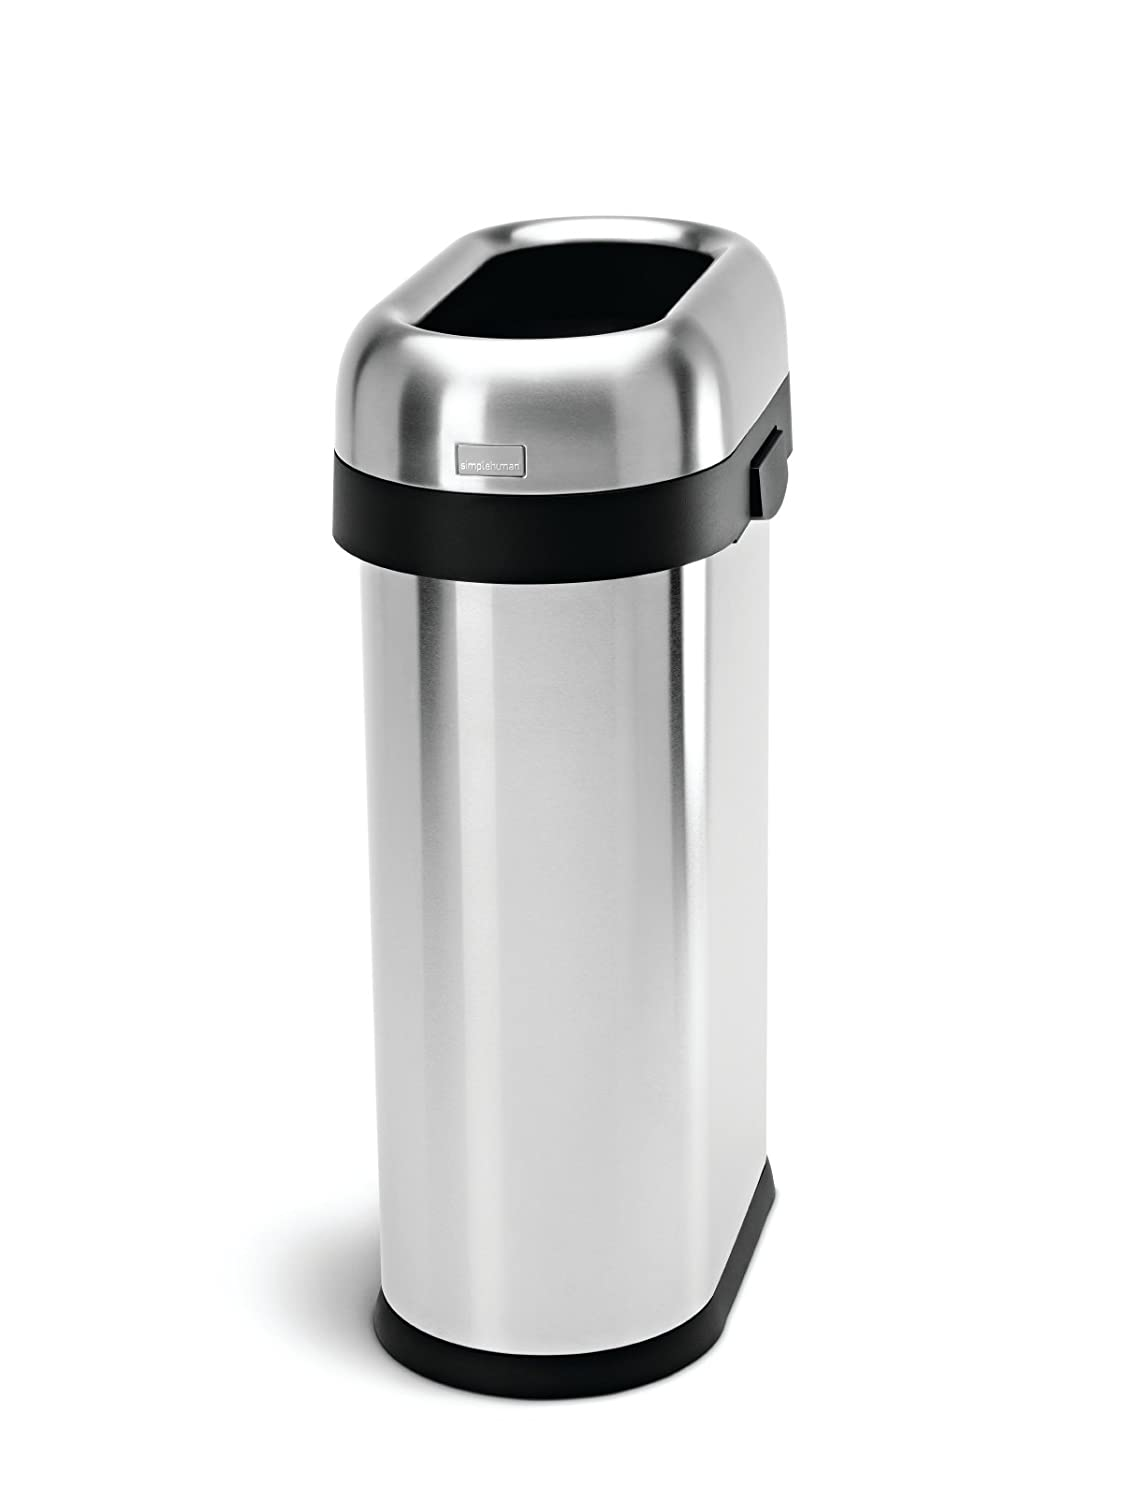 Tall Narrow Trash Can Best Kitchen Garbage Cans News To Review